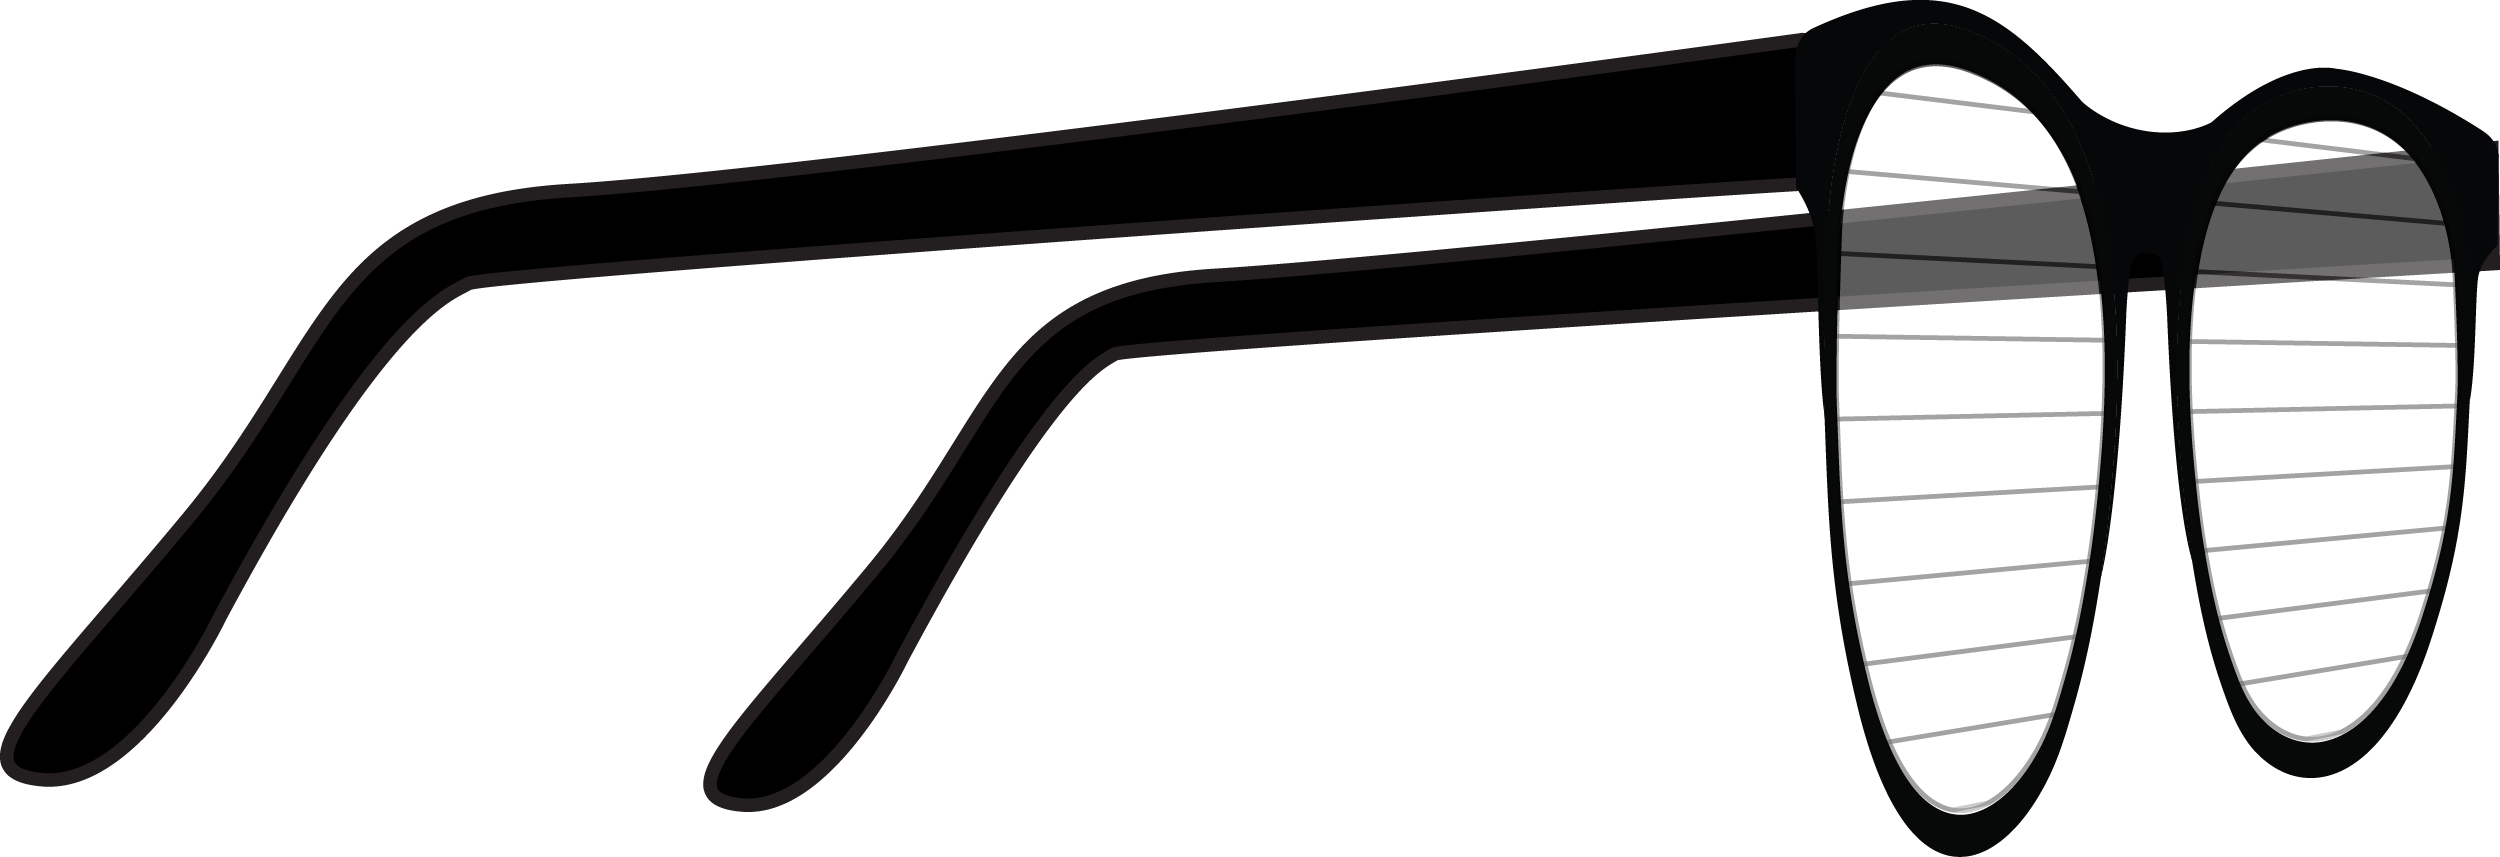 Glasses PNG Side View